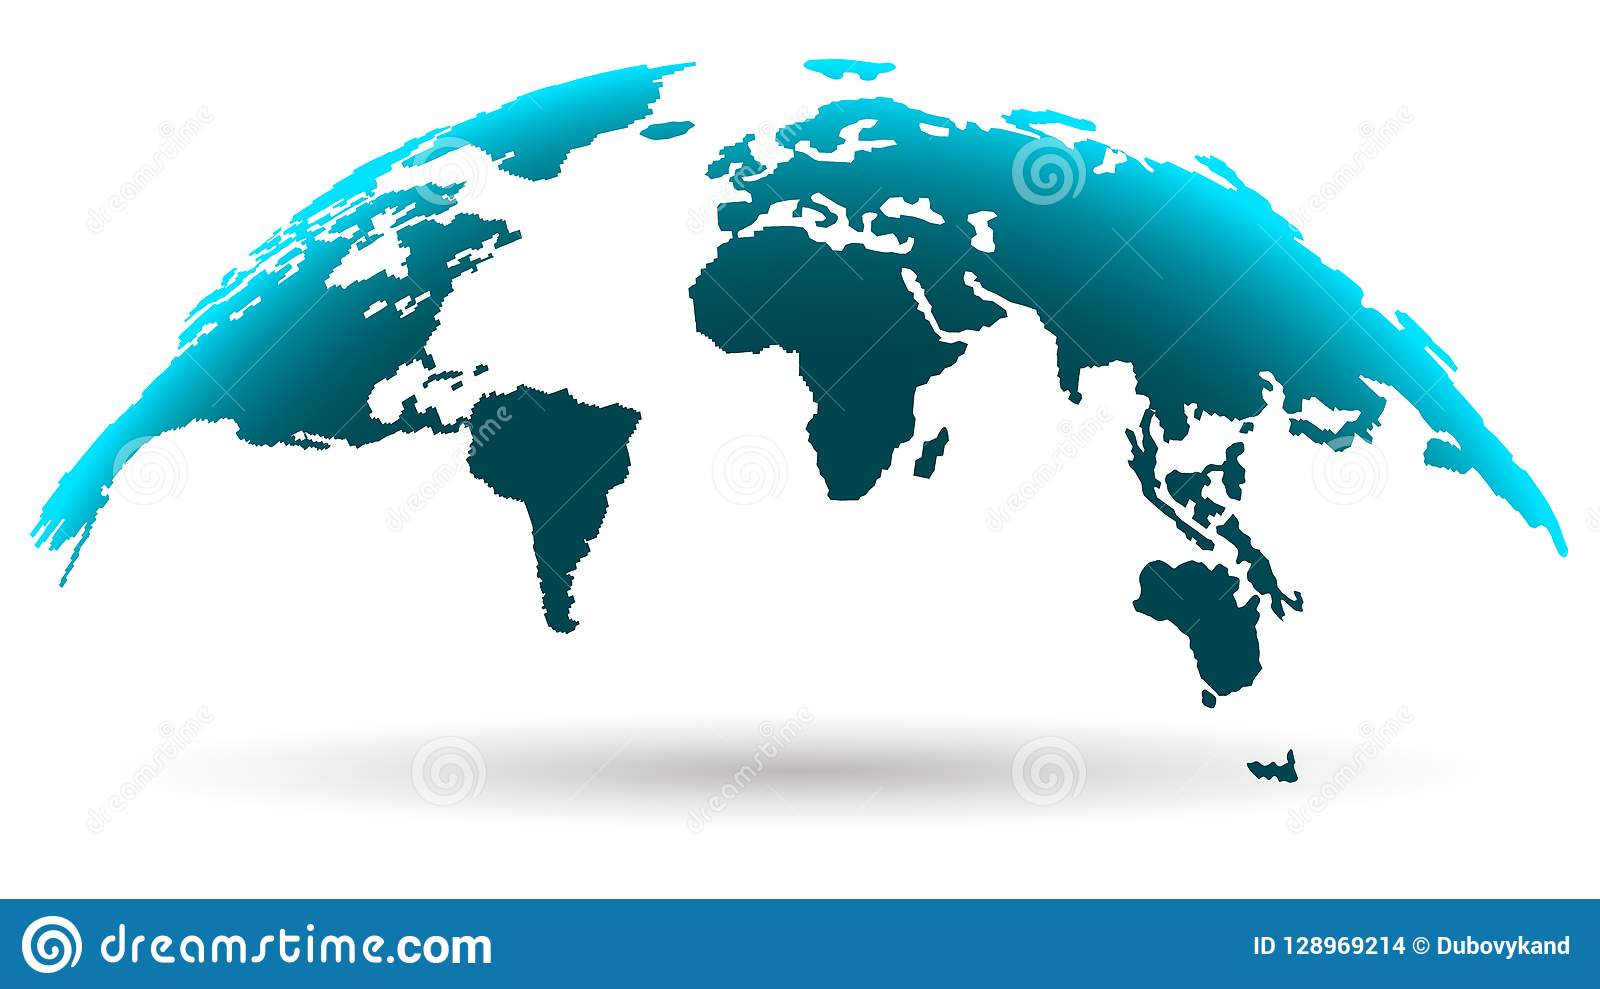 Blue Globe Map Business Design. Earth Continents Silhouette ... on map of greek world, map of prehistoric world, map of roman world, map of buddhist world, map of black world, map of clean world, map of political world, map of developed world, map of digital world, map of colonial world, map of western world, map of old world, map of beautiful world, map of once upon a time, map of islamic world, map of medieval world, map of the classical world, map of ancient world, map of rural area, india modern world,